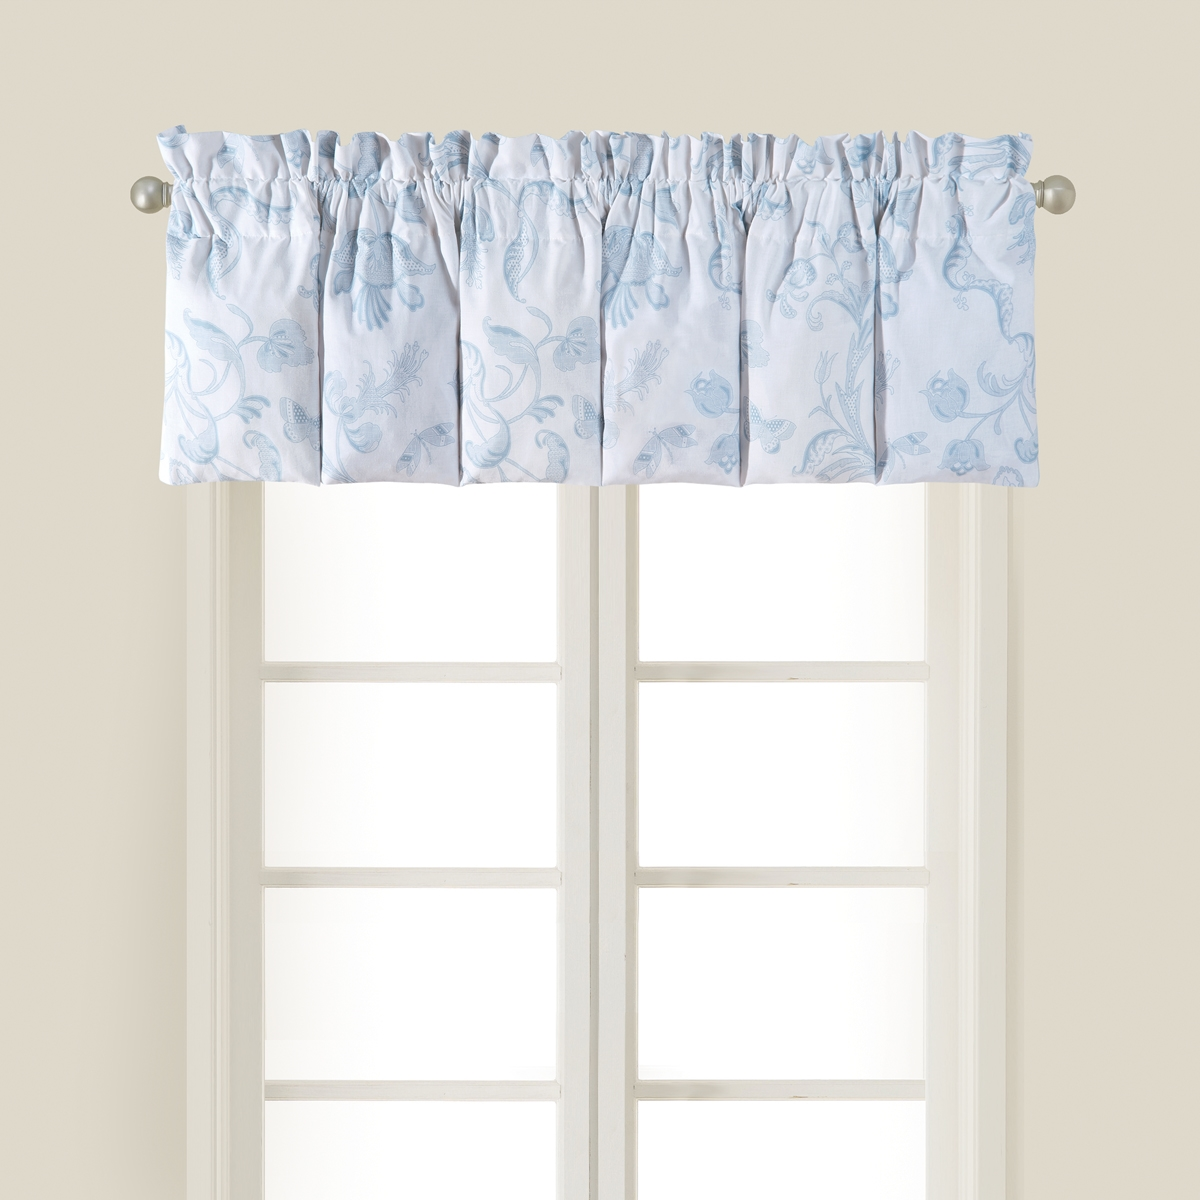 valance curtains jacquard p floral luxury blue window botanical polyester